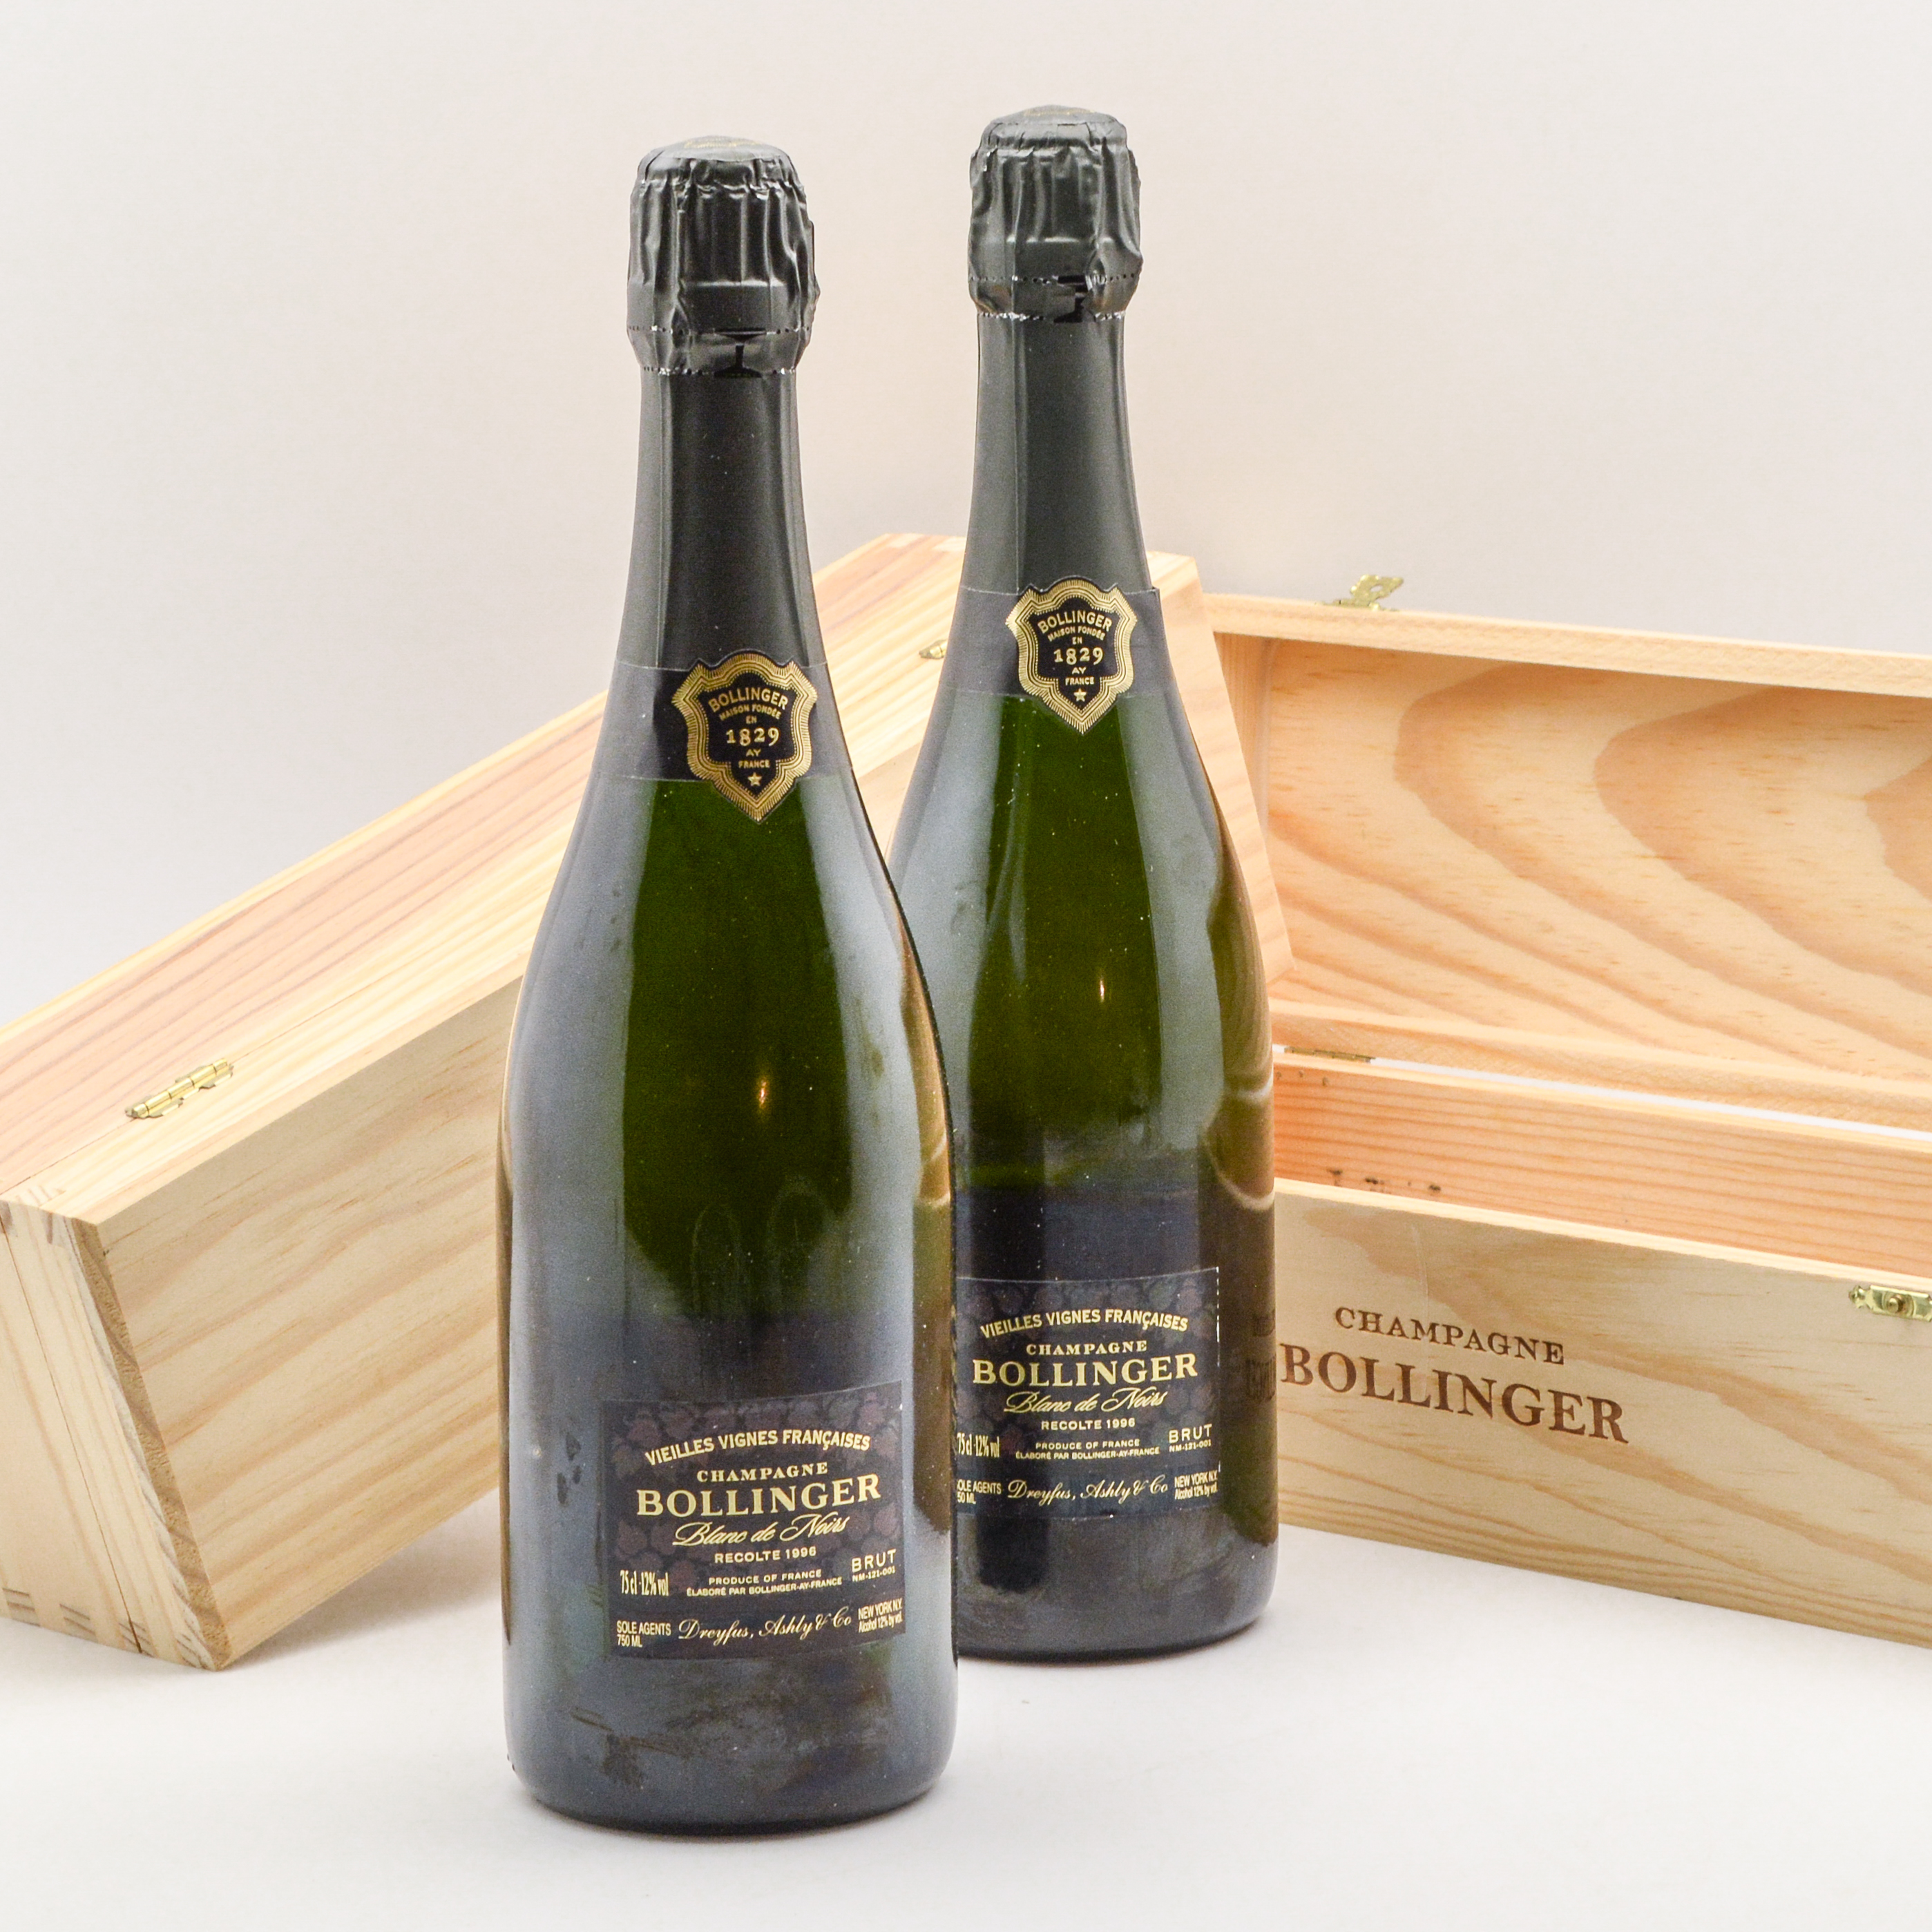 Bollinger Blanc de Noirs 1996, 2 bottles (Lot 1002, Estimate: $2,400-3,250)